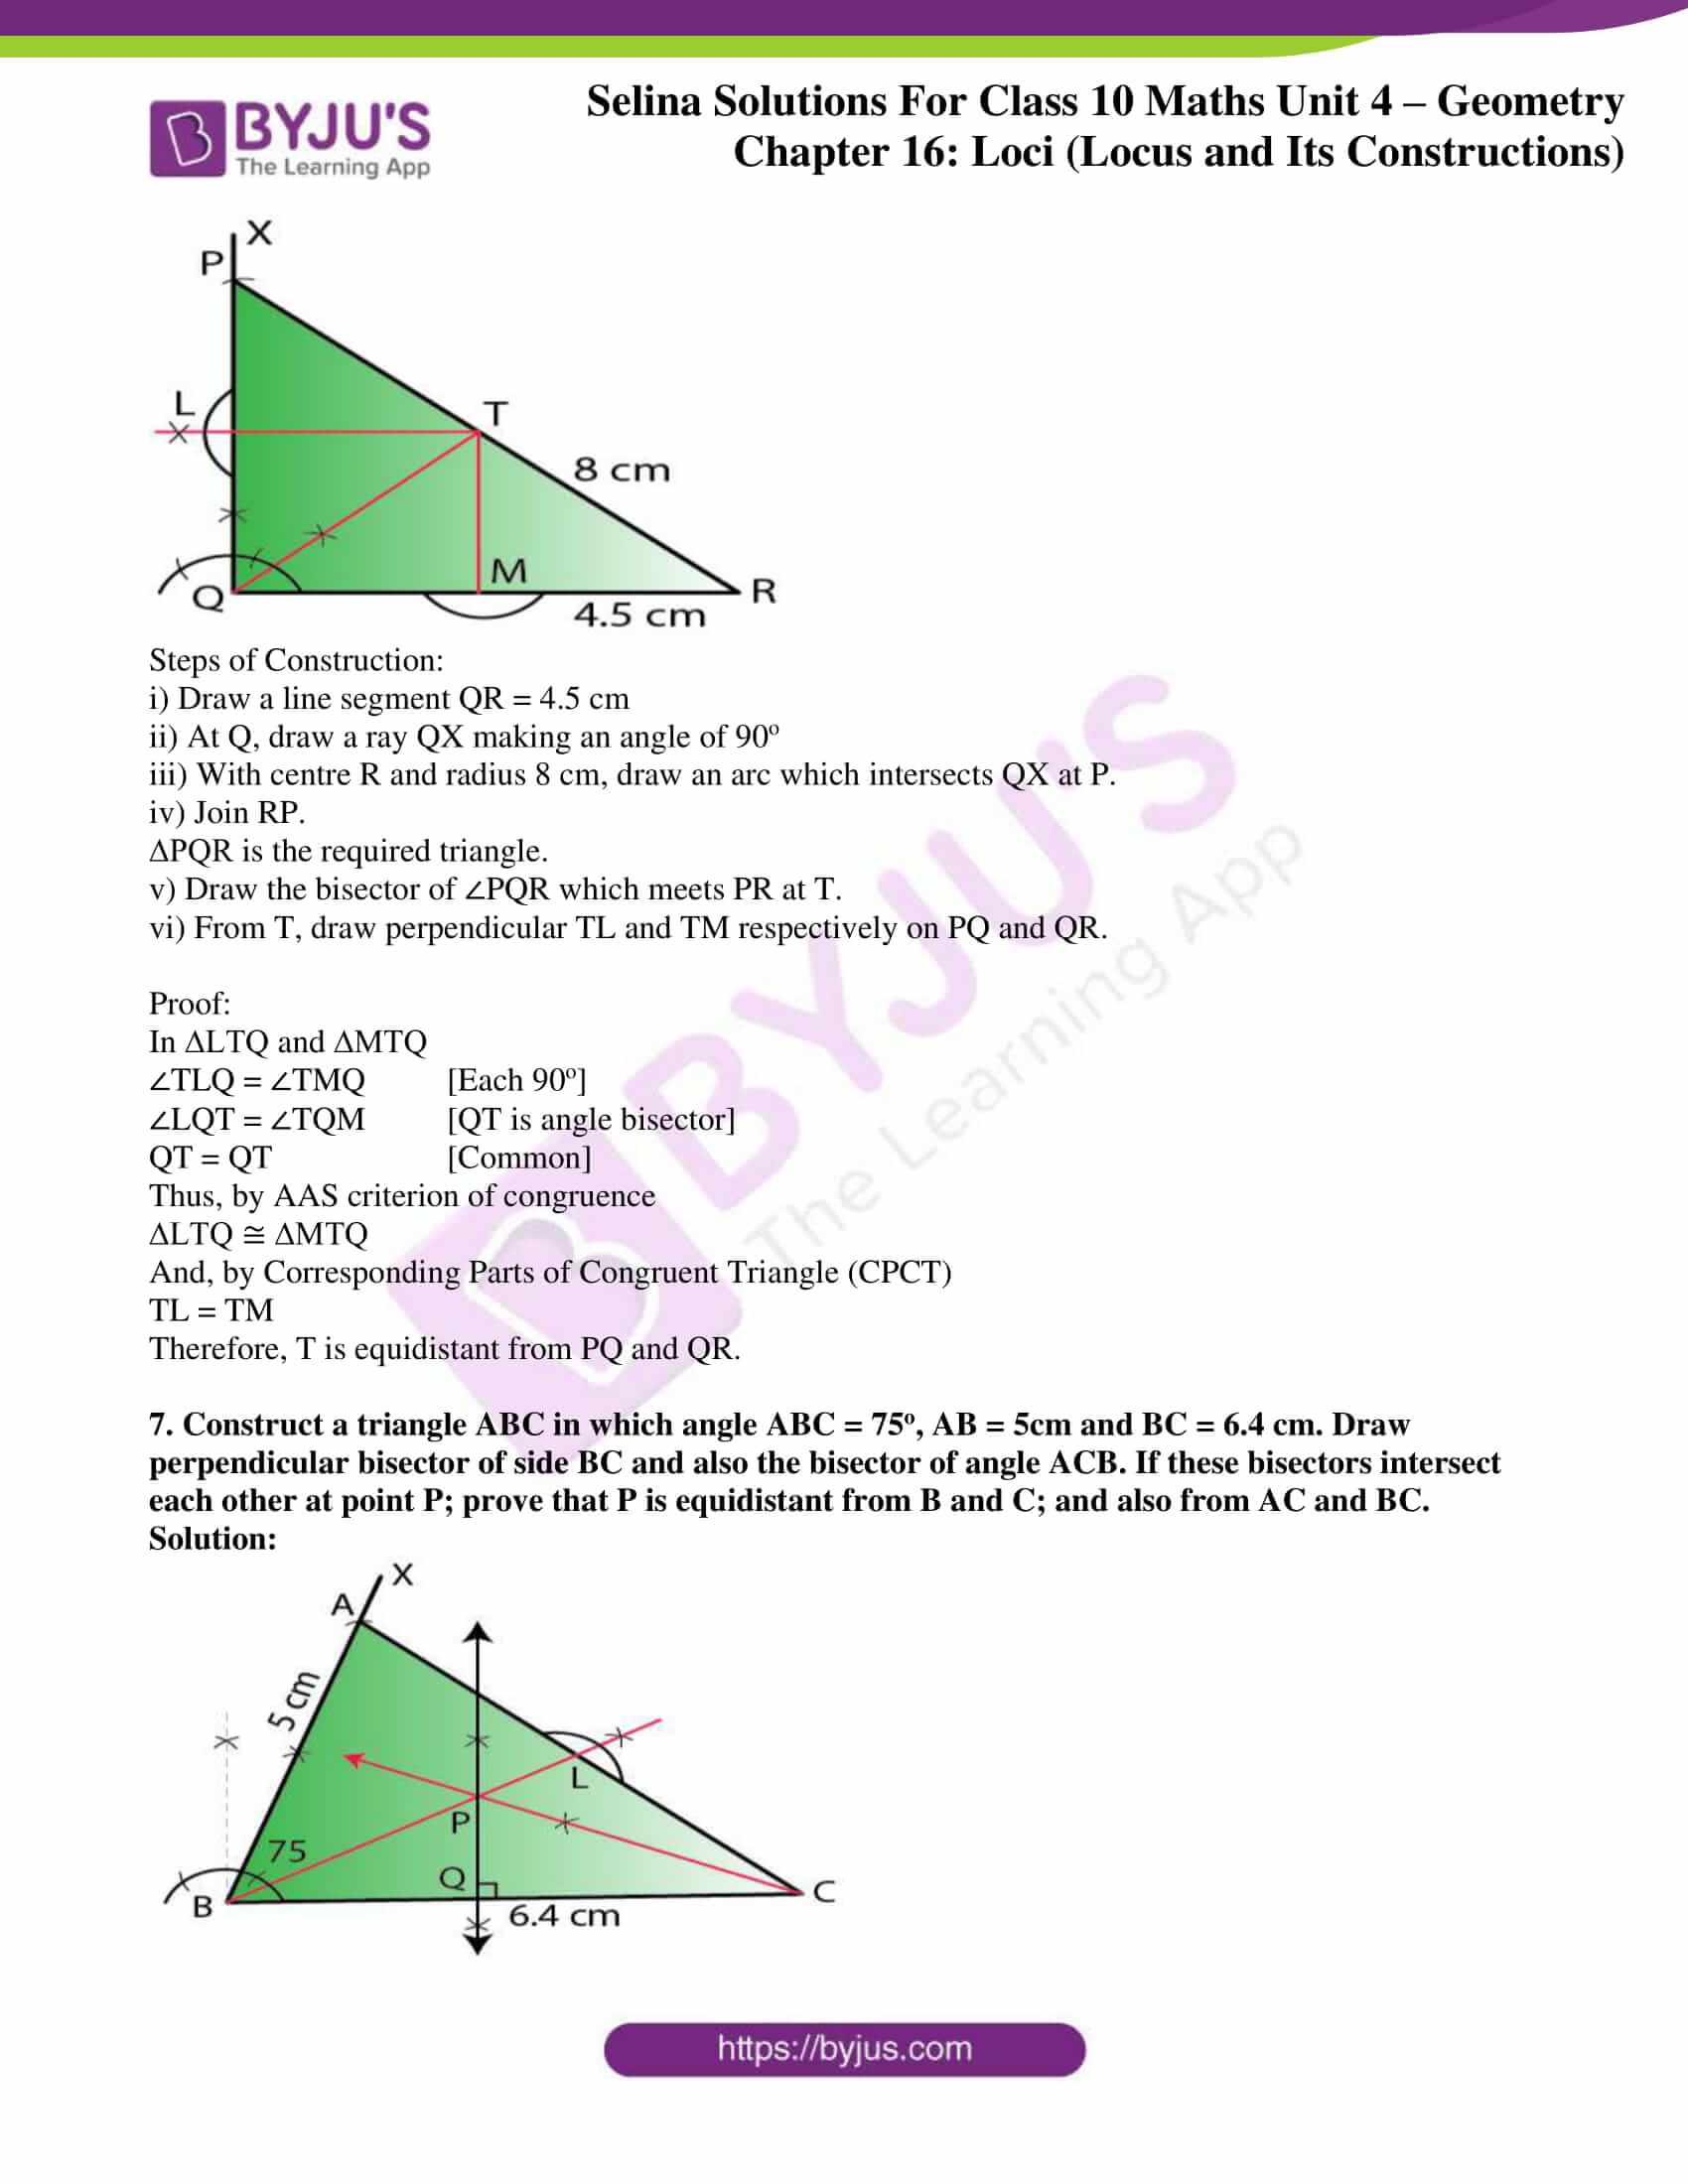 selina solution concise maths class 10 chapter 16 ex a 5